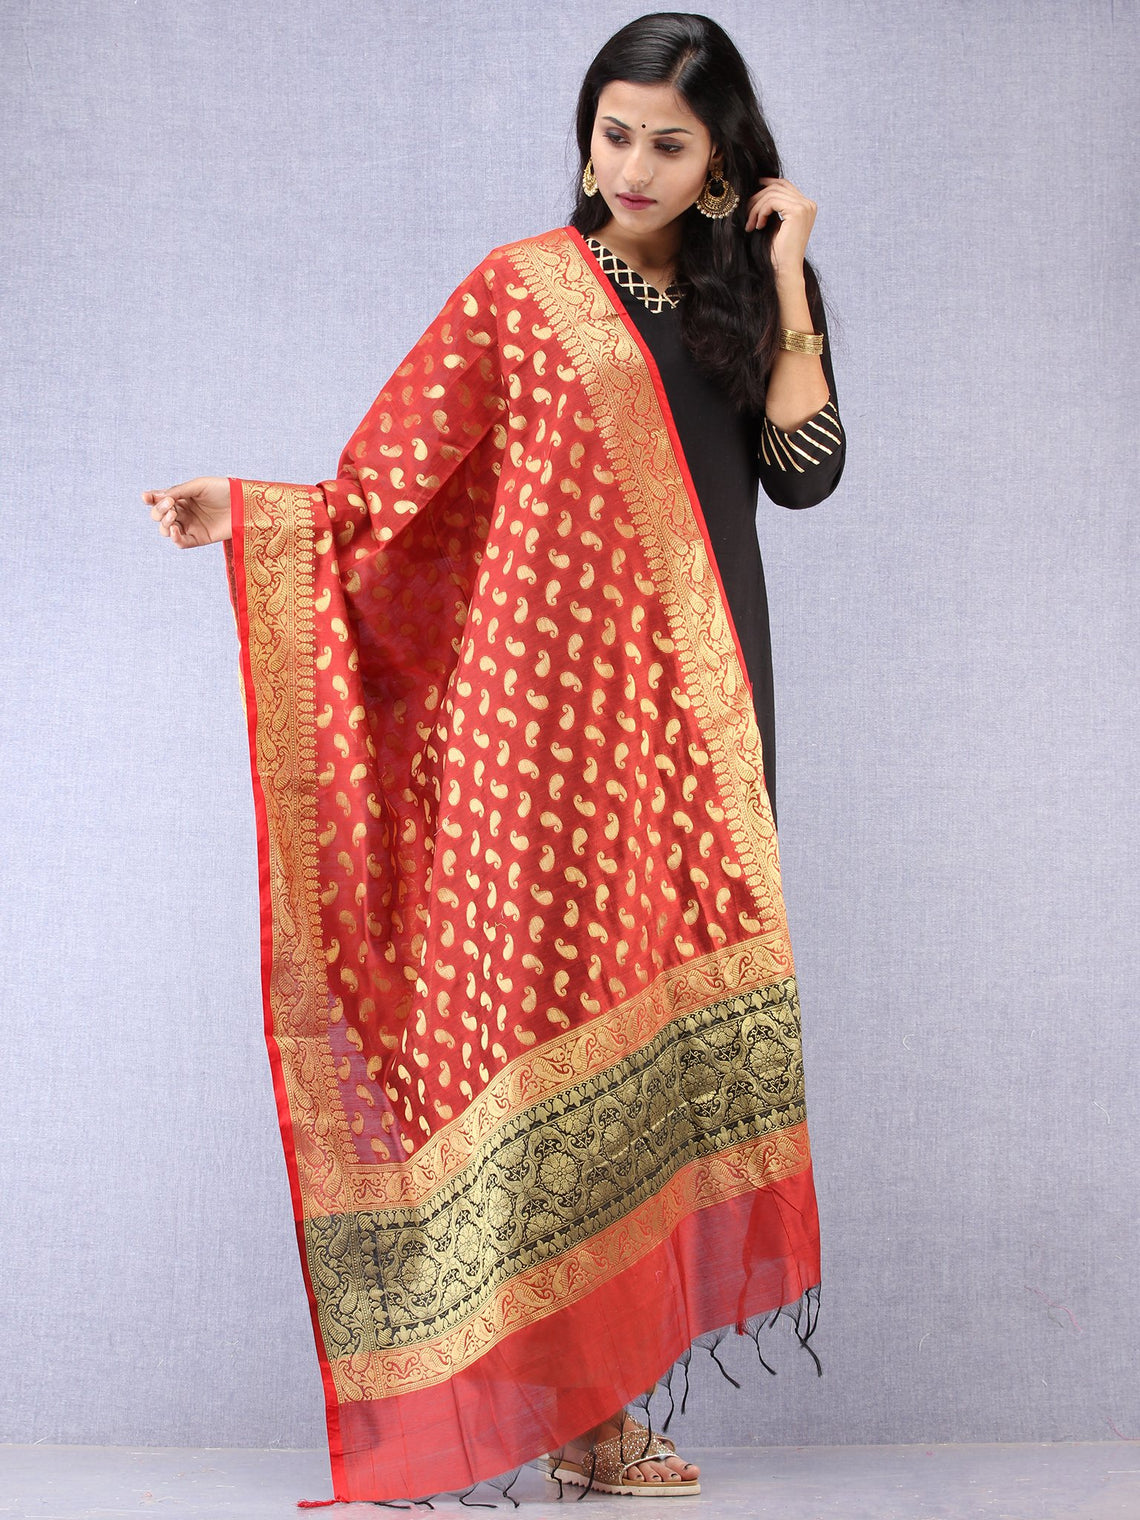 Banarasi Chanderi Dupatta With Zari Work - Red & Gold - D04170846